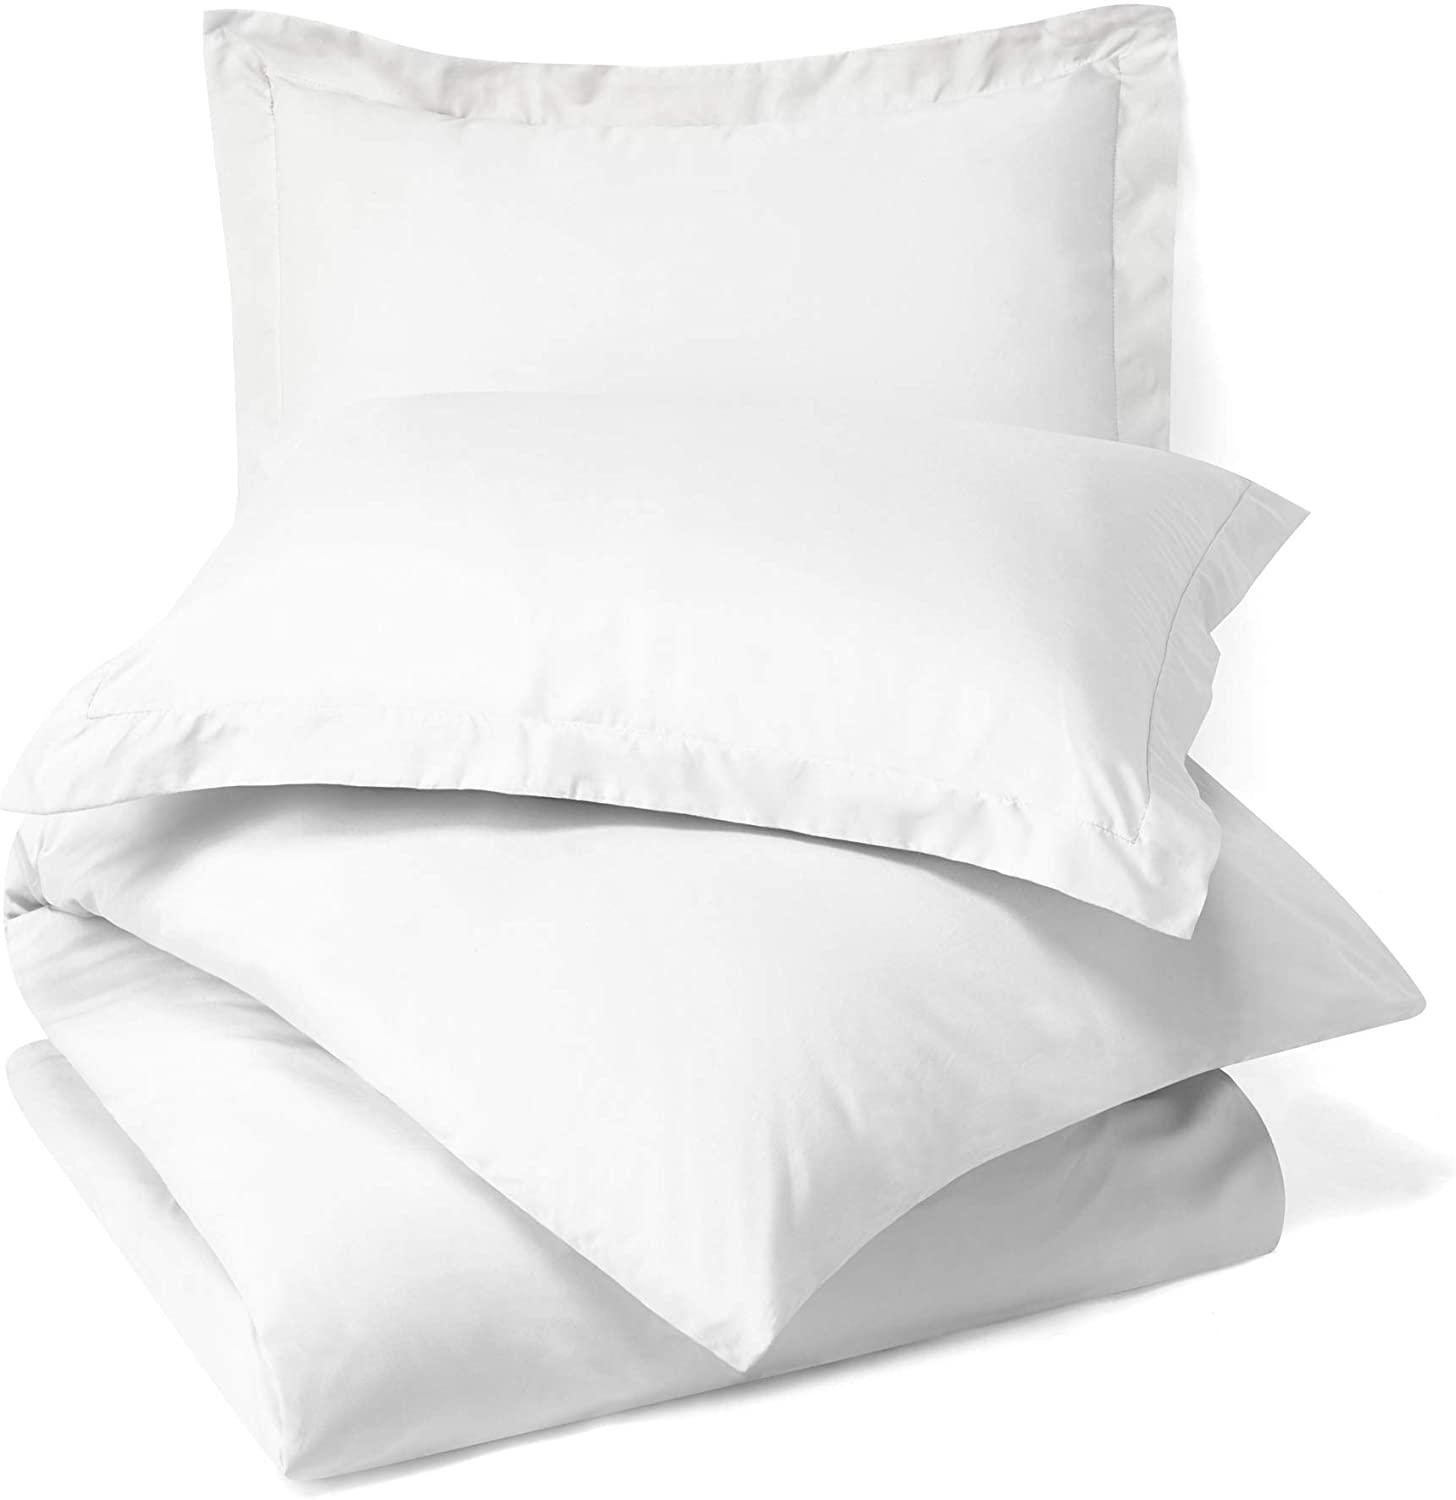 Fitted Sheet Nestl Bedding Duvet Cover with Fitted Sheet 3 Piece Set Twin XL Soft Double Brushed Microfiber Hotel Collection 1 Pillow Sham White Comforter Cover with Button Closure